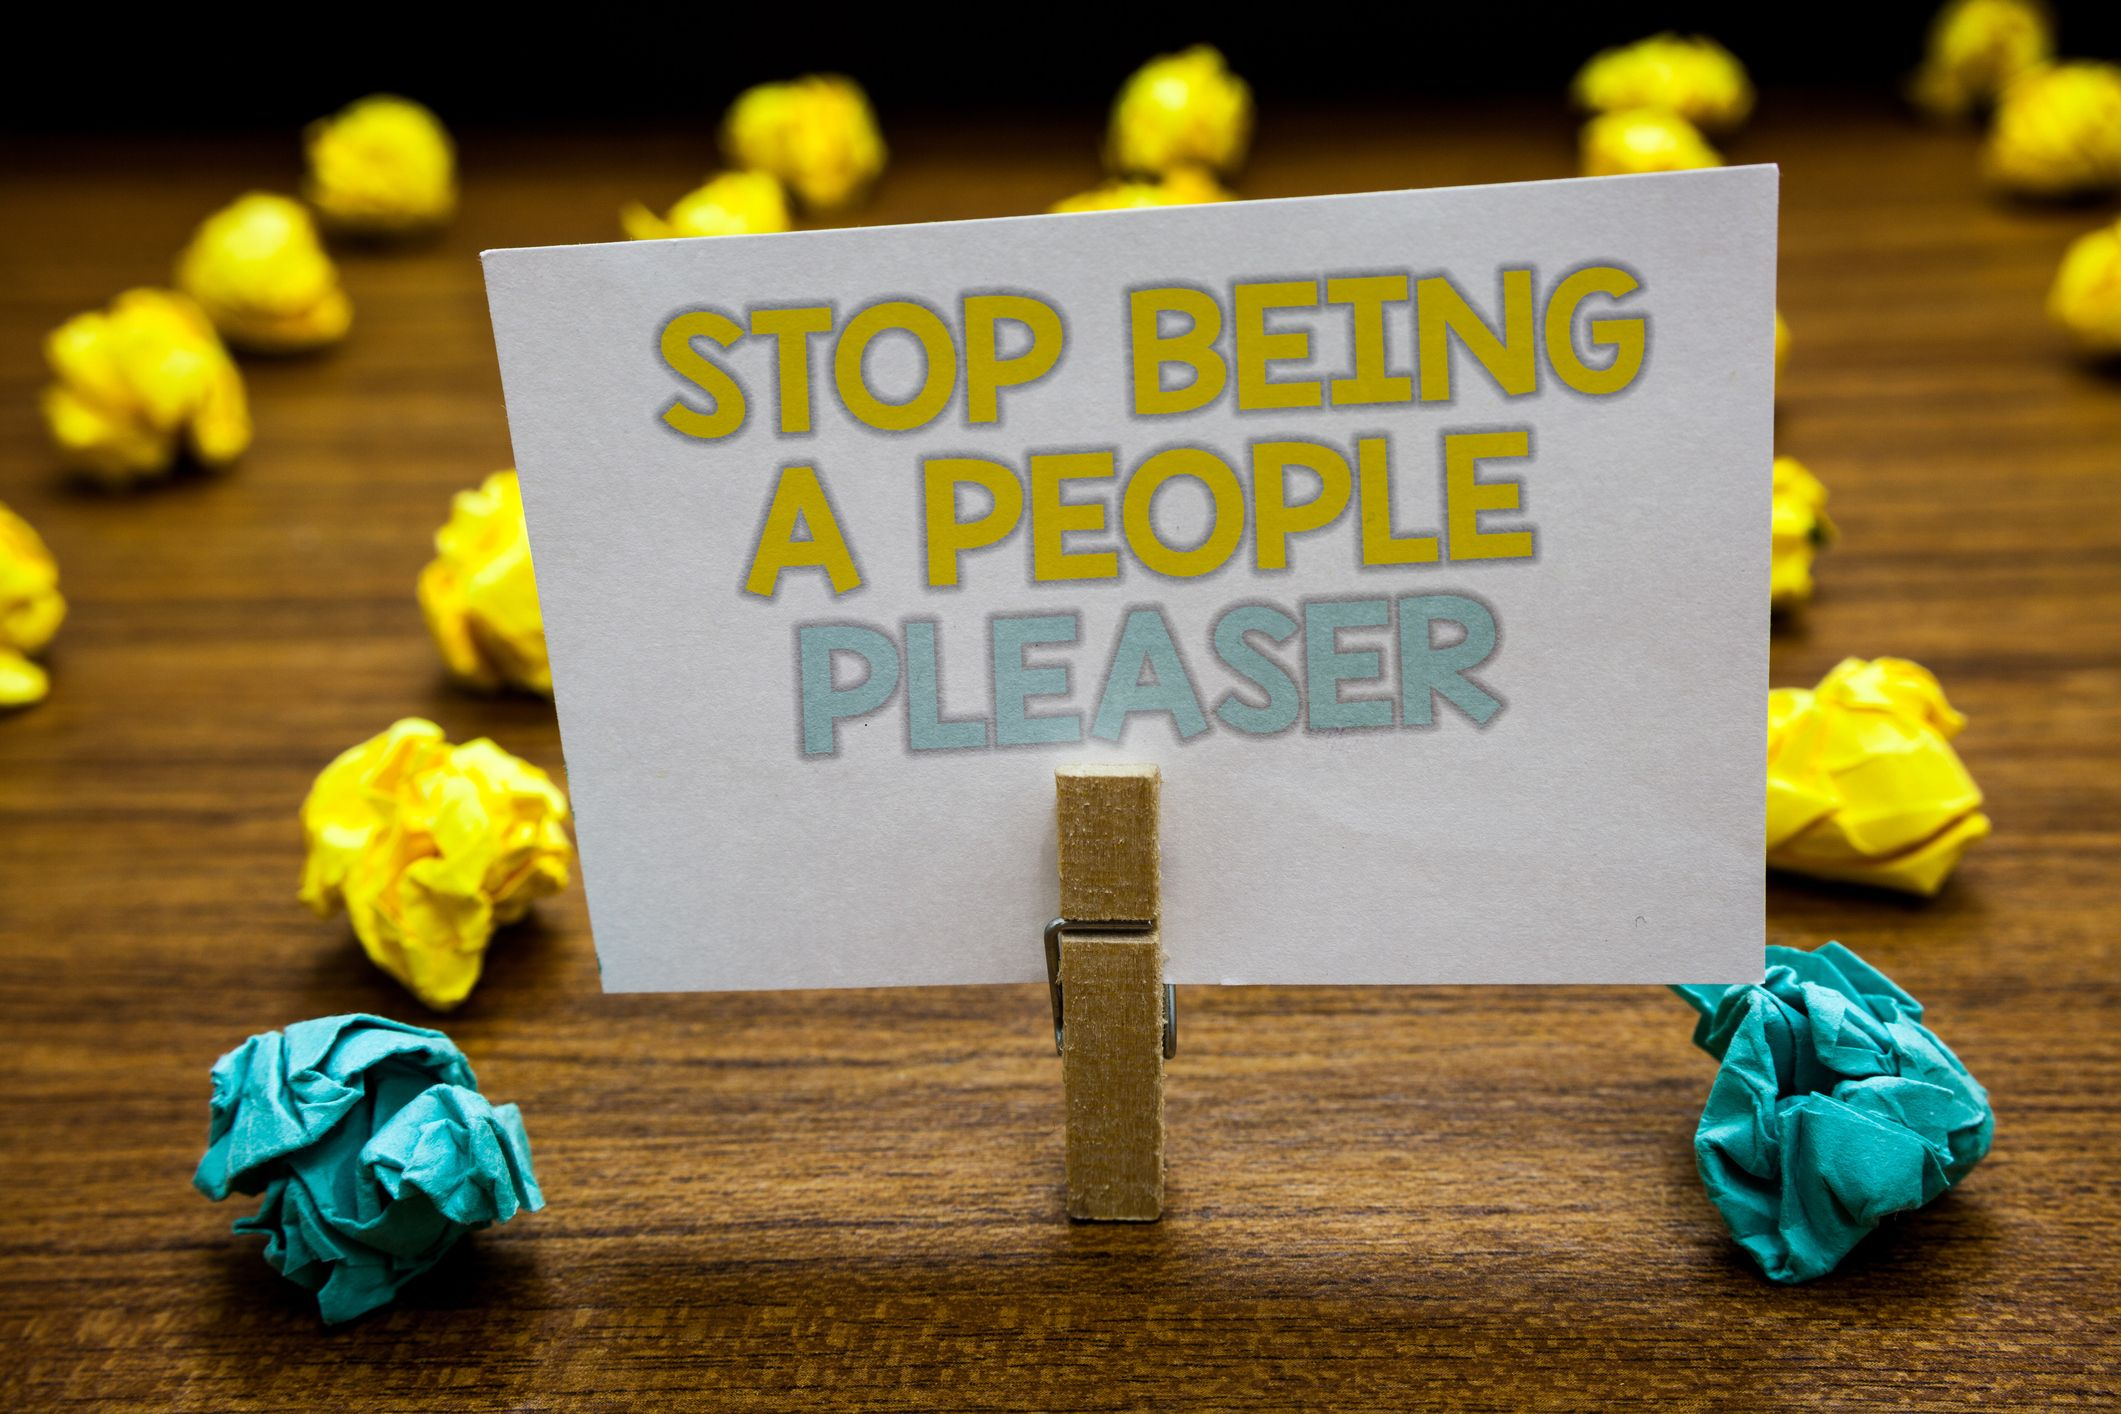 Stop being a people pleaser